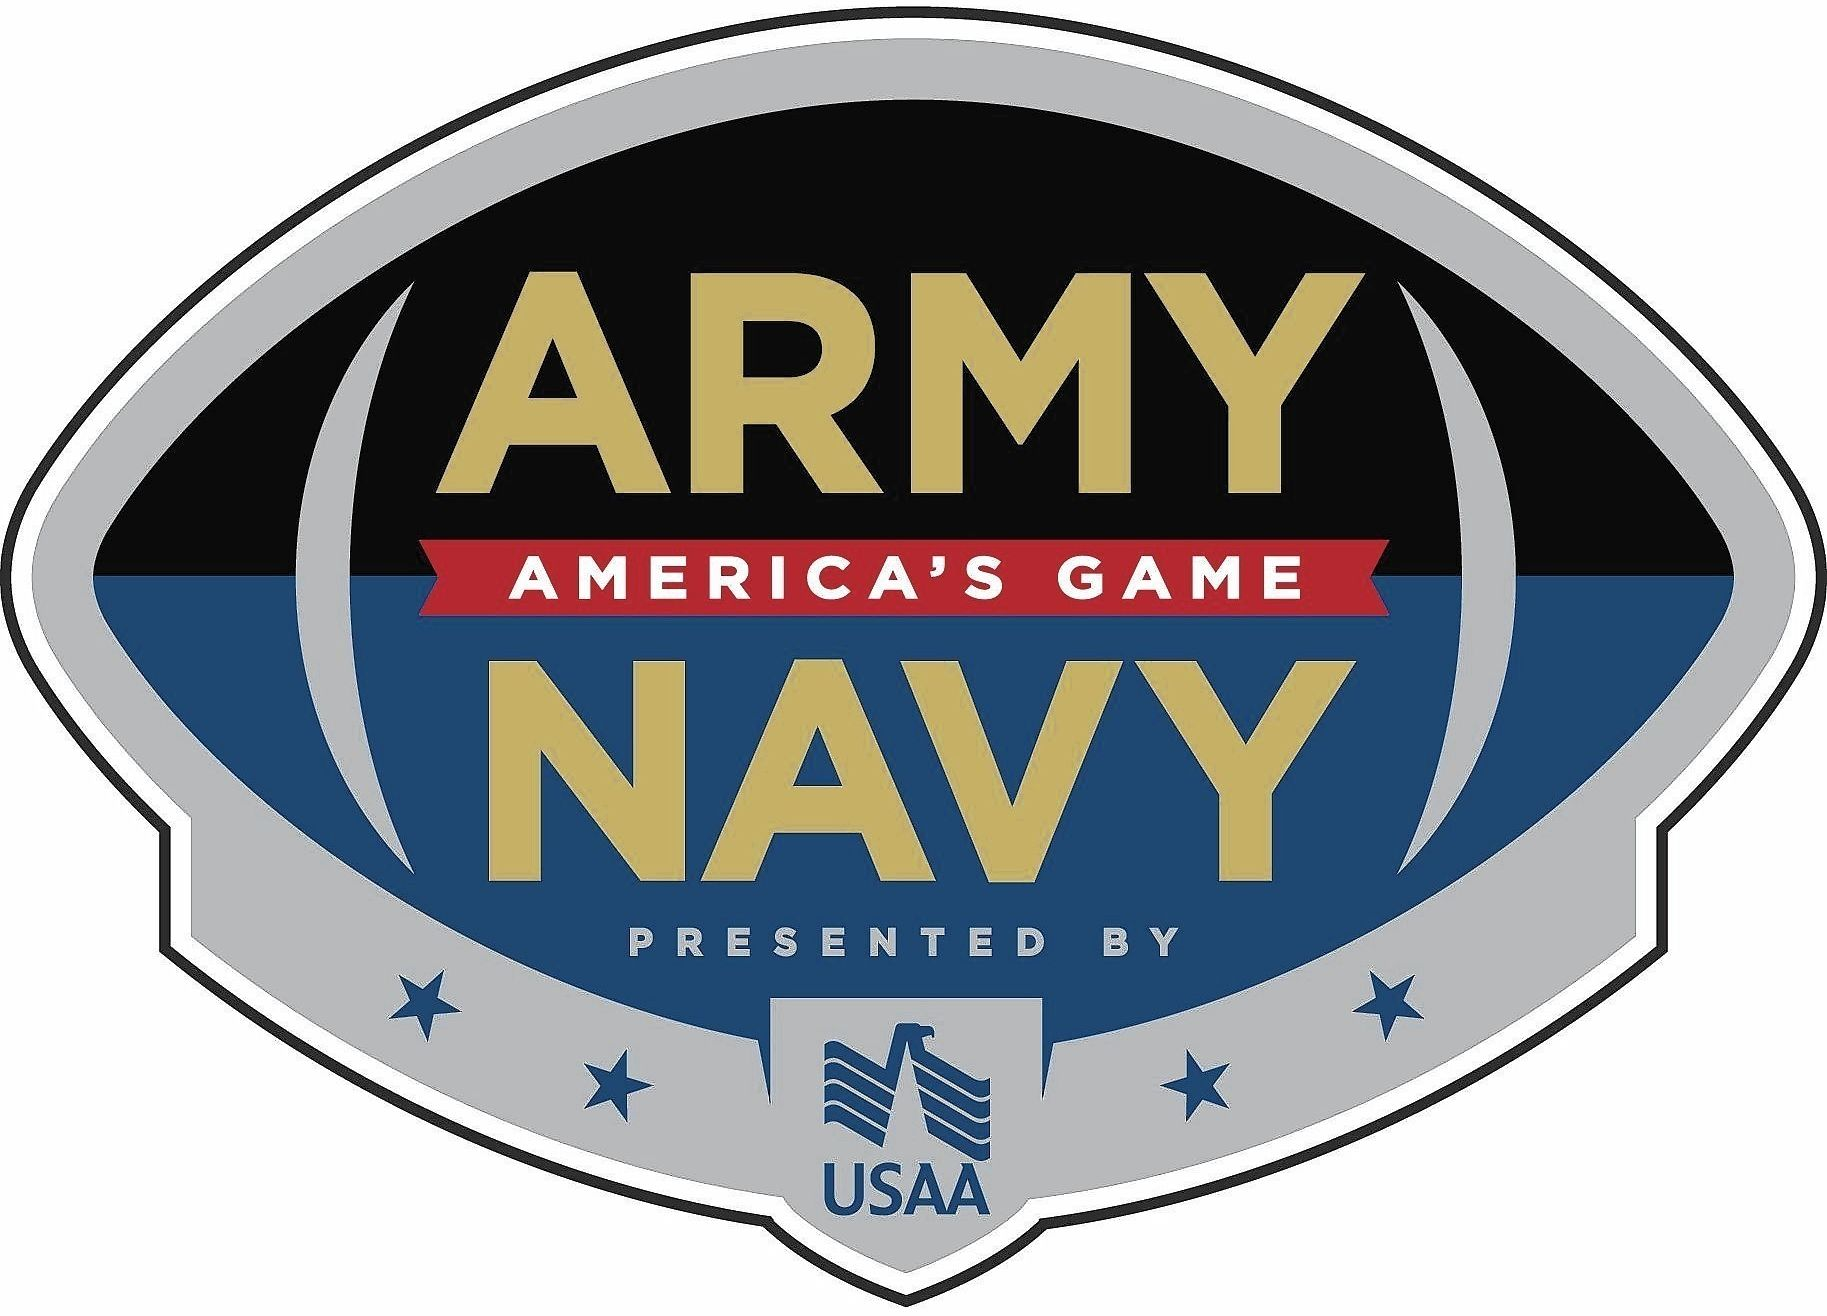 2017 Army-Navy Game liveblog